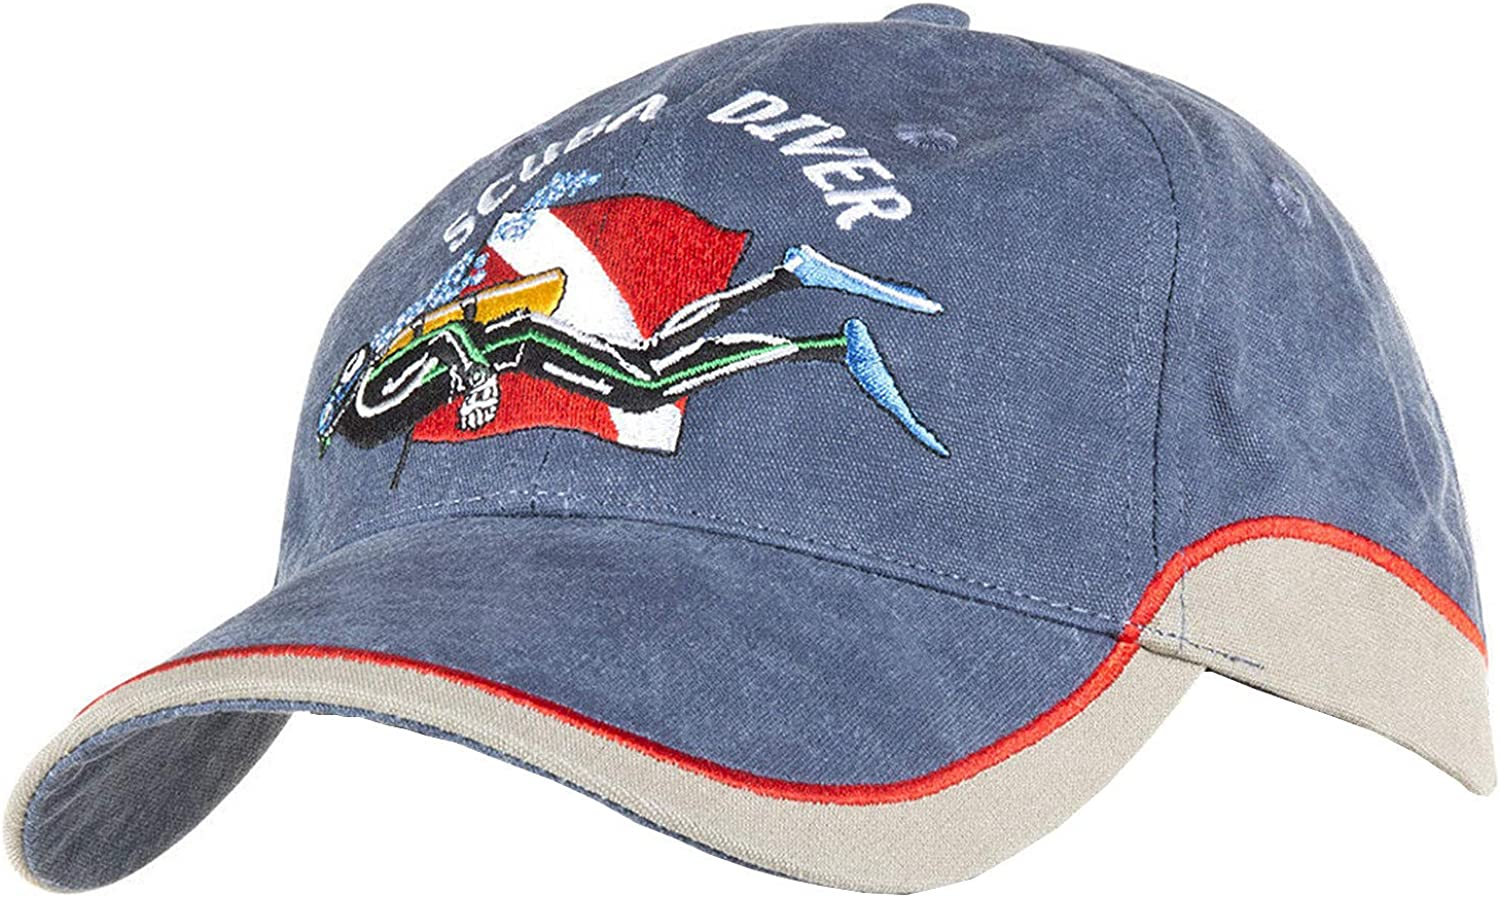 Trident Scuba Selling Hat Colorado Springs Mall Diver